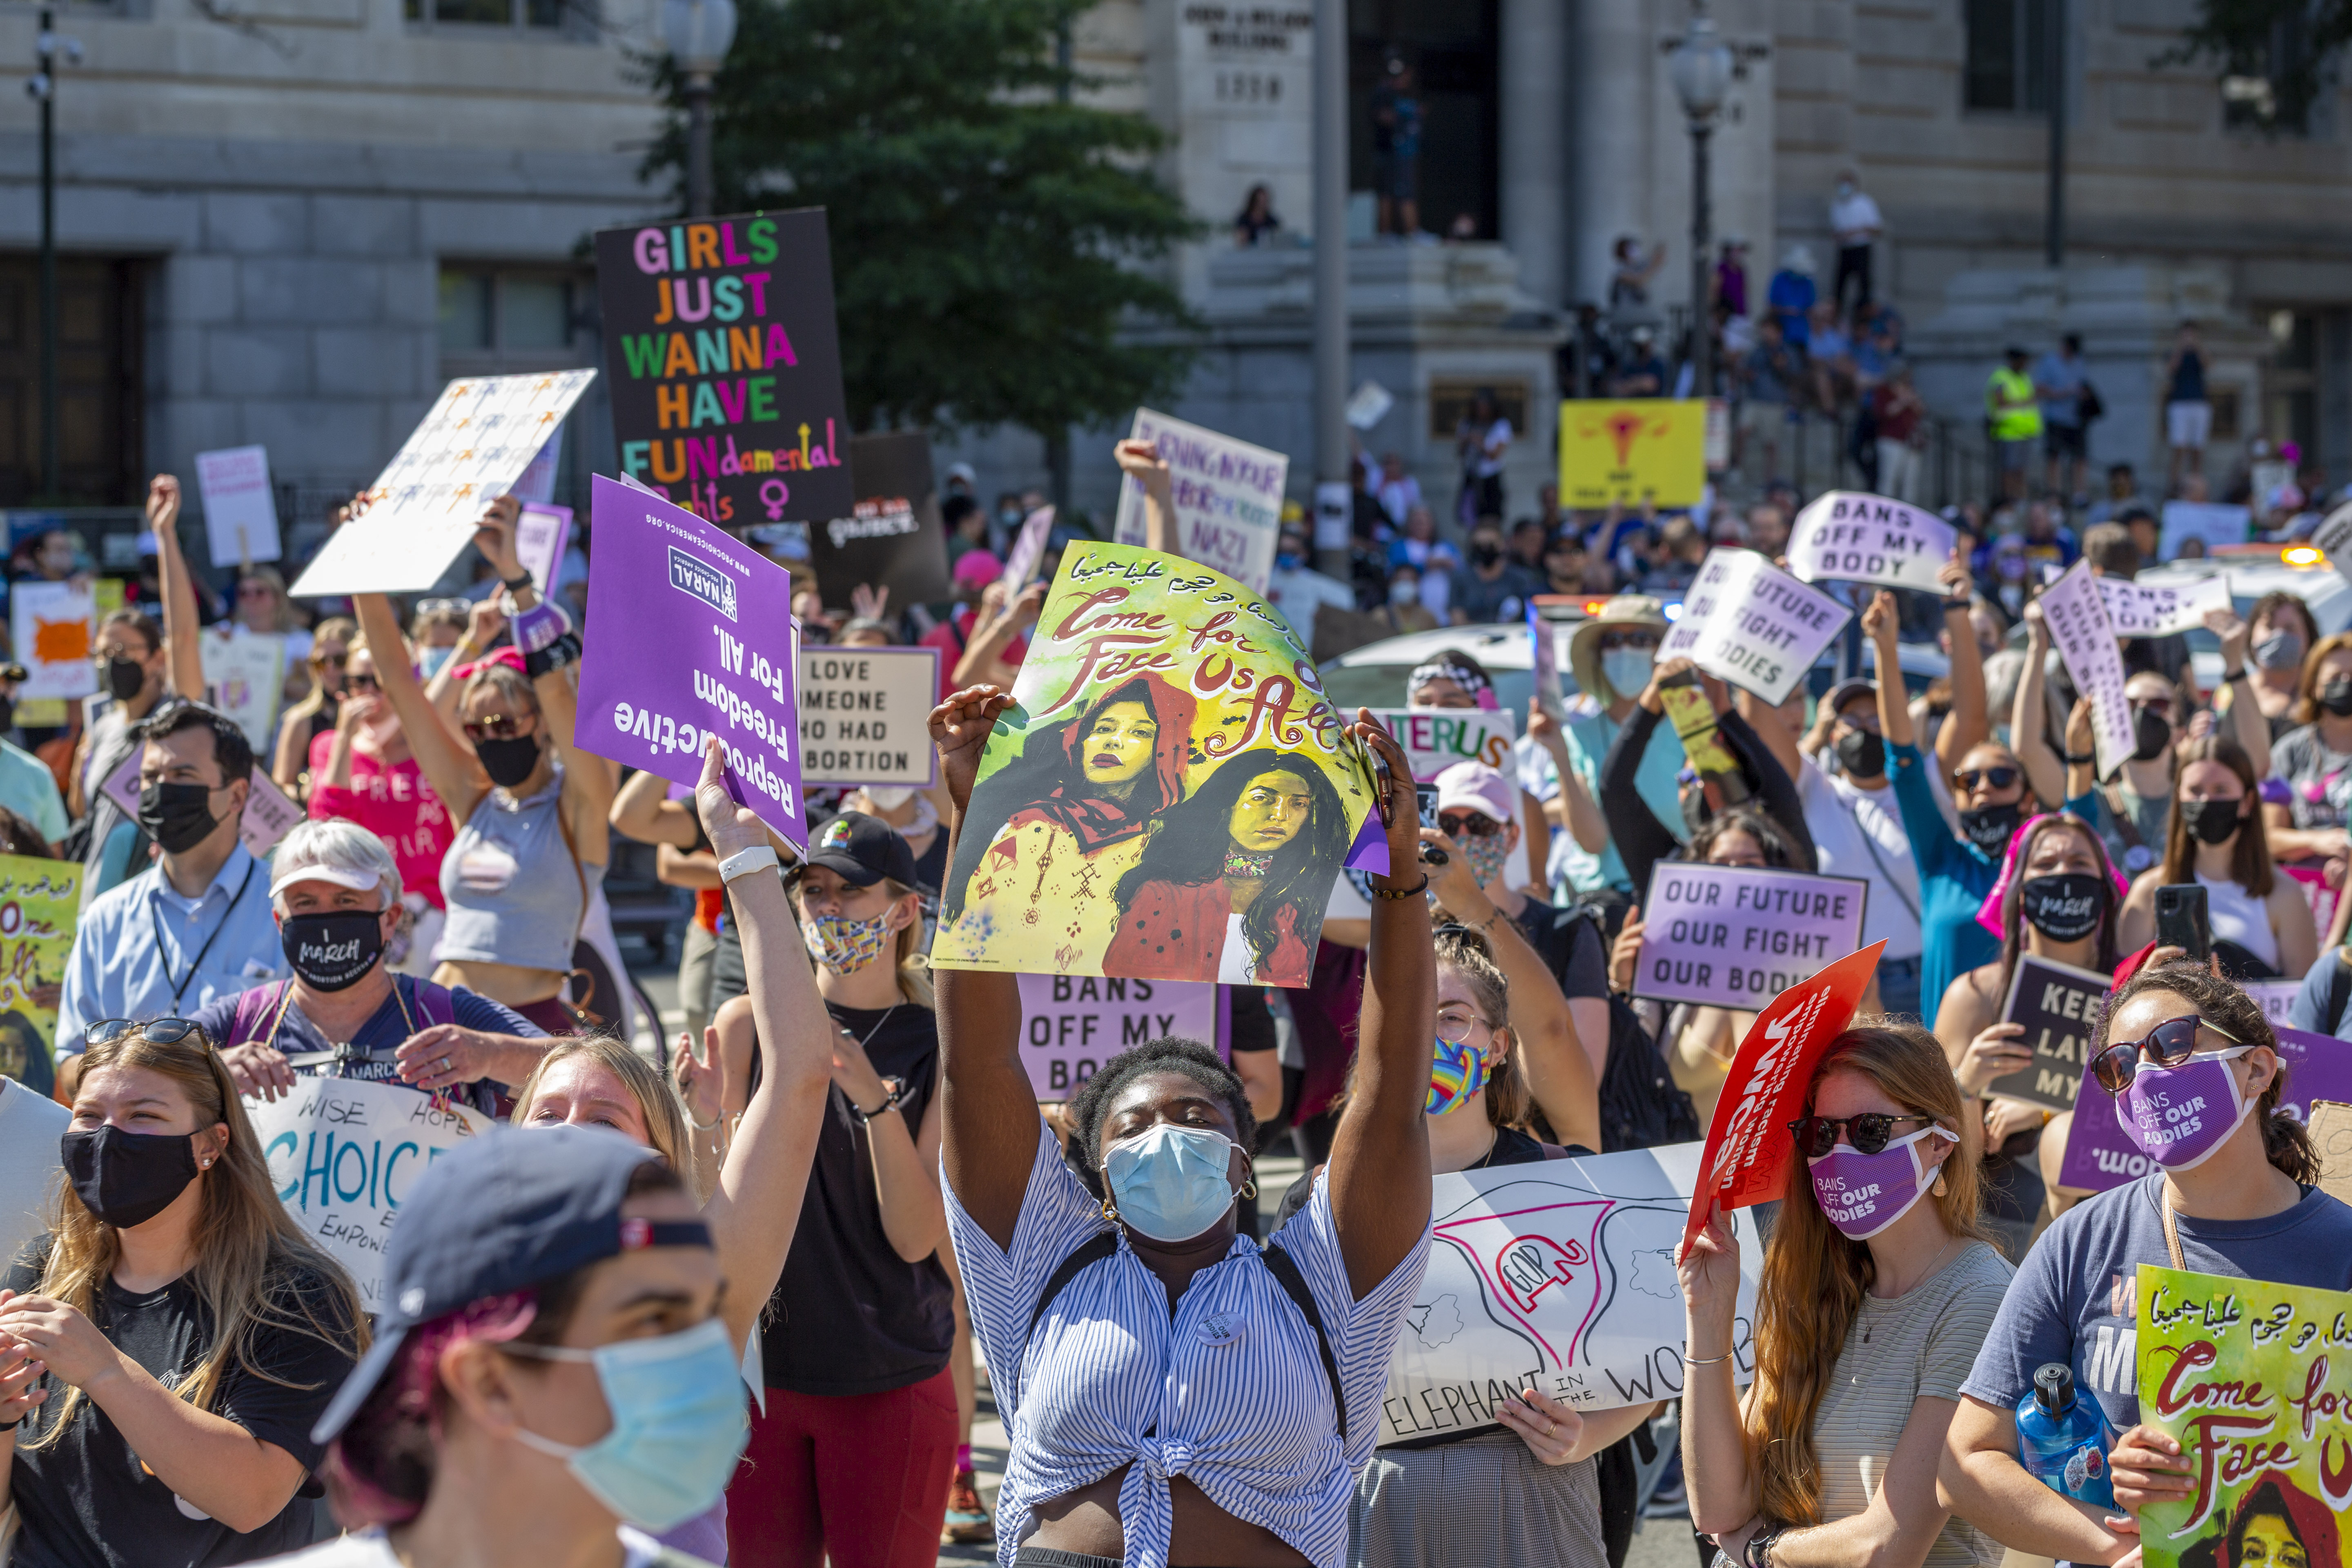 Rally for Abortion Justice on Saturday, Oct. 2, 2021 in Washington.